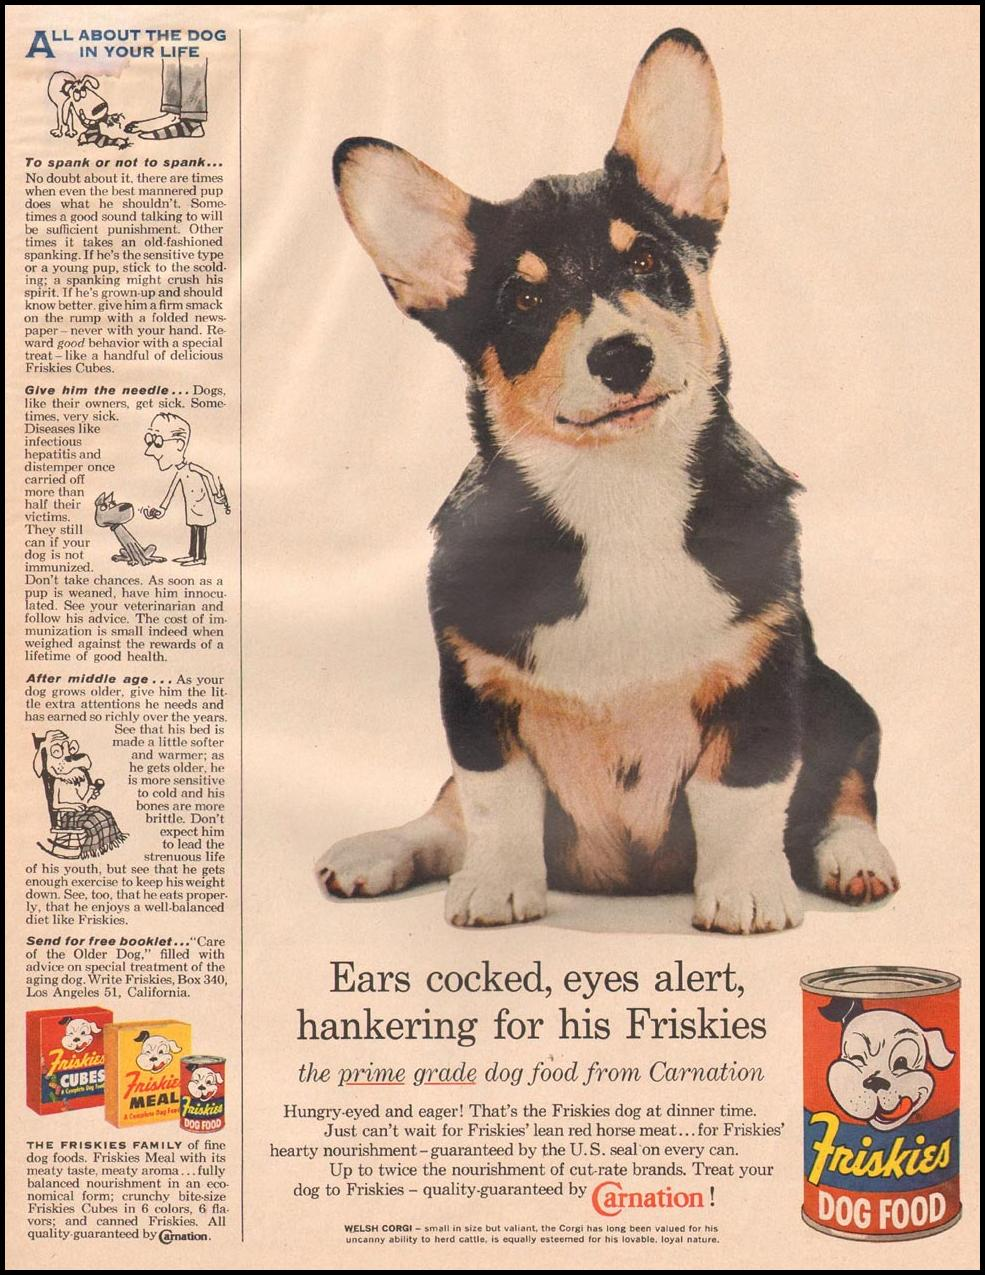 FRISKIES DOG FOOD LIFE 11/24/1957